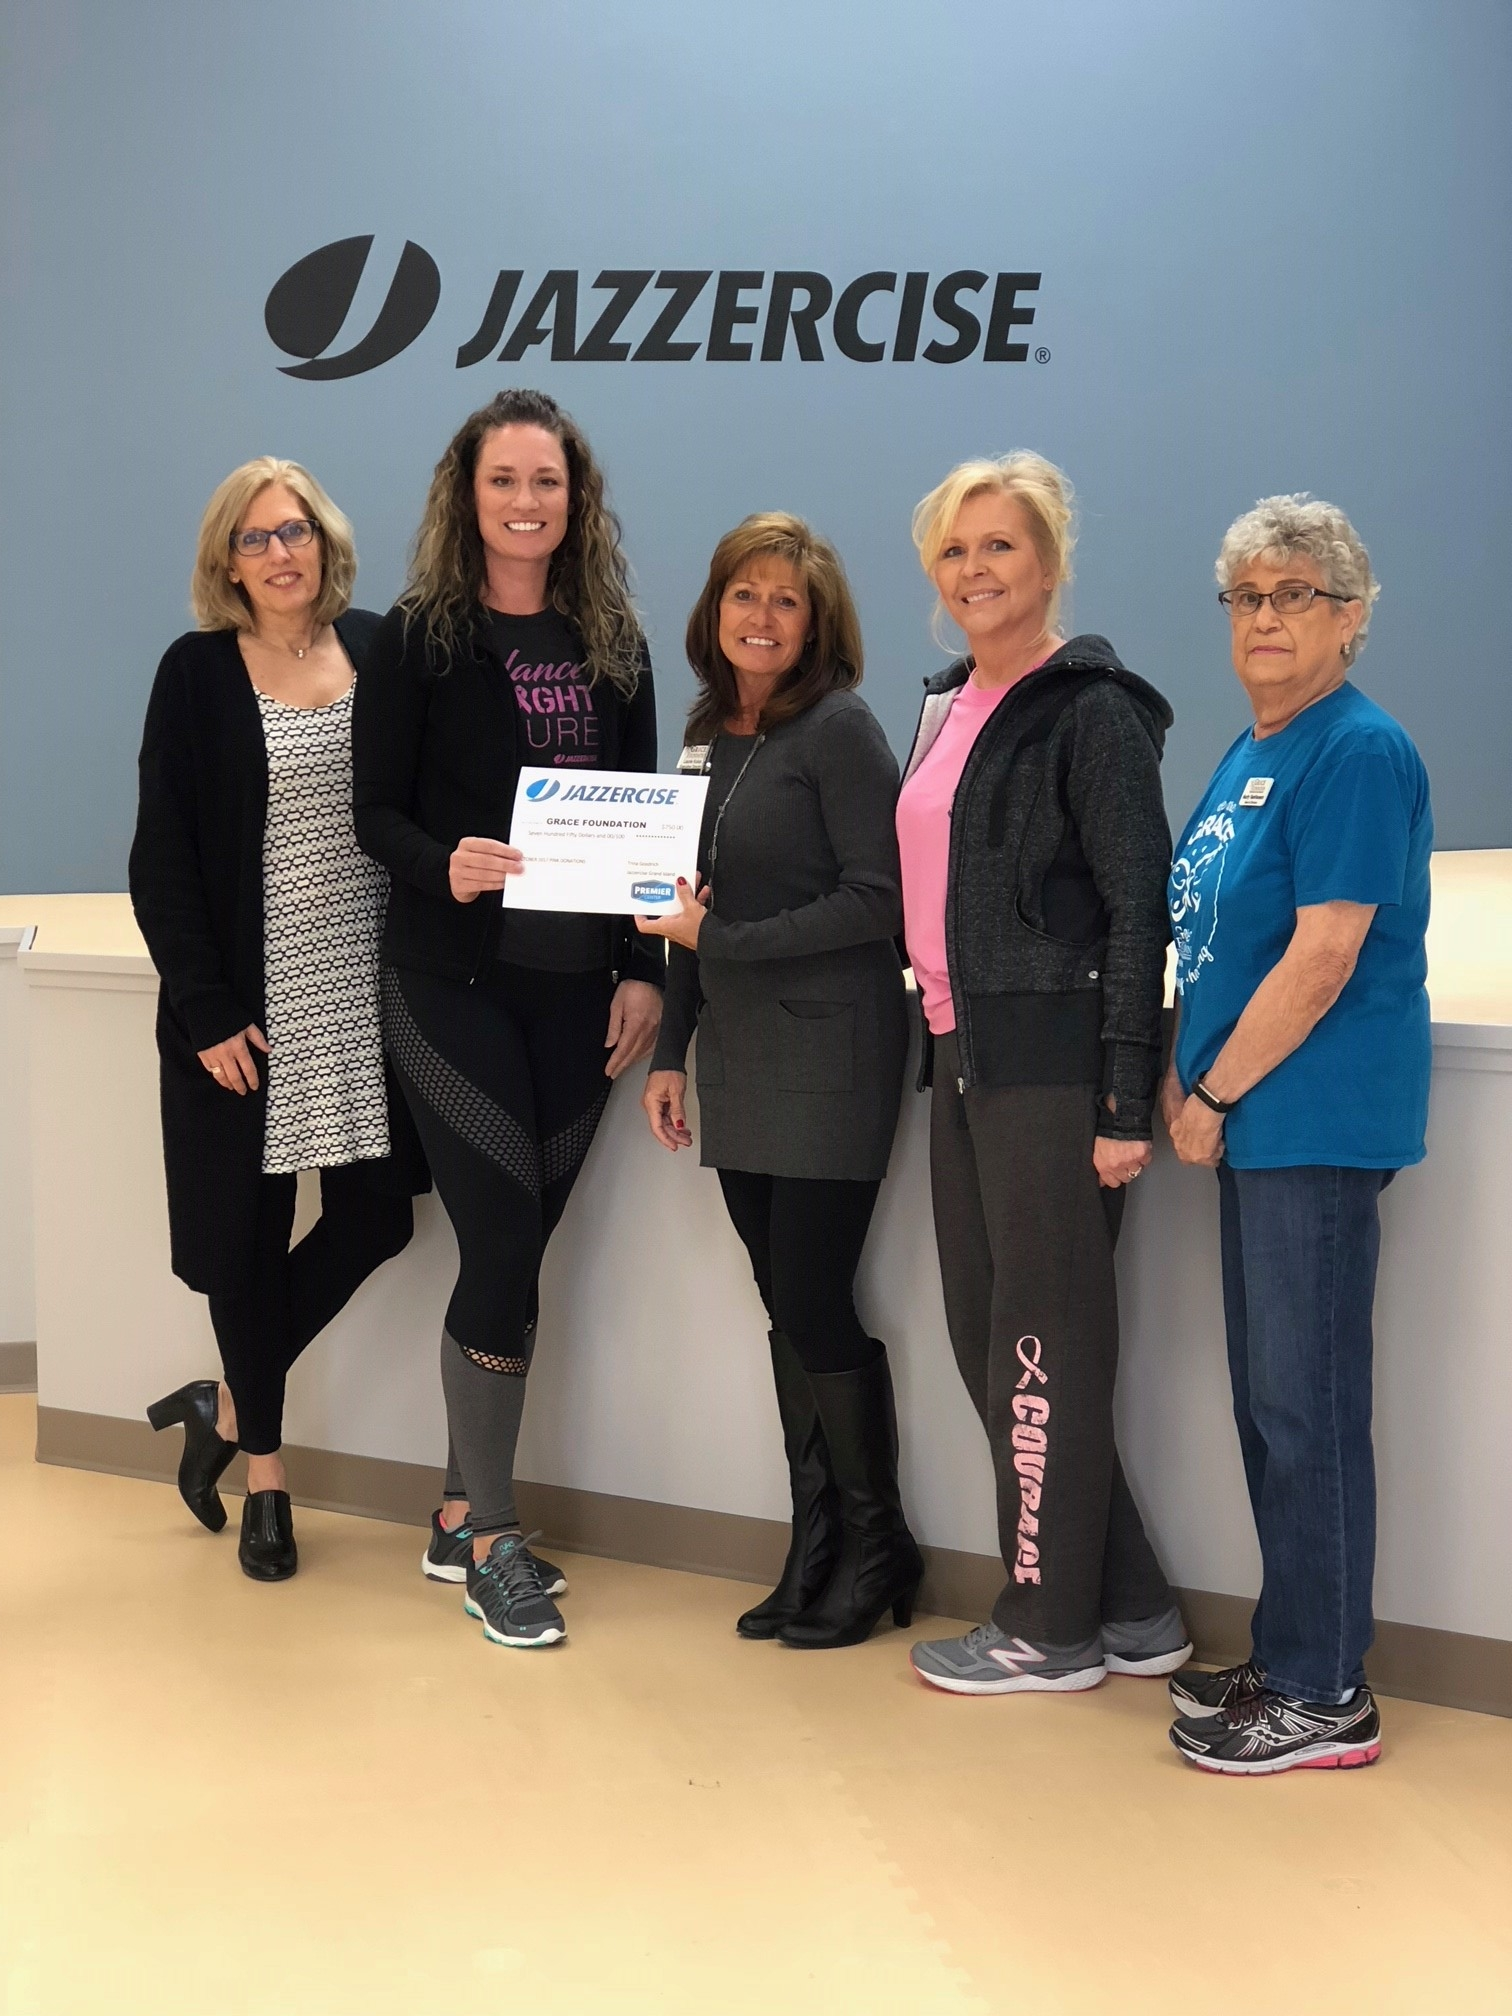 Thanks, GI Jazzercise! - Grand Island Jazzercise raised $750 for the GRACE Foundation during October 2017 from their members!